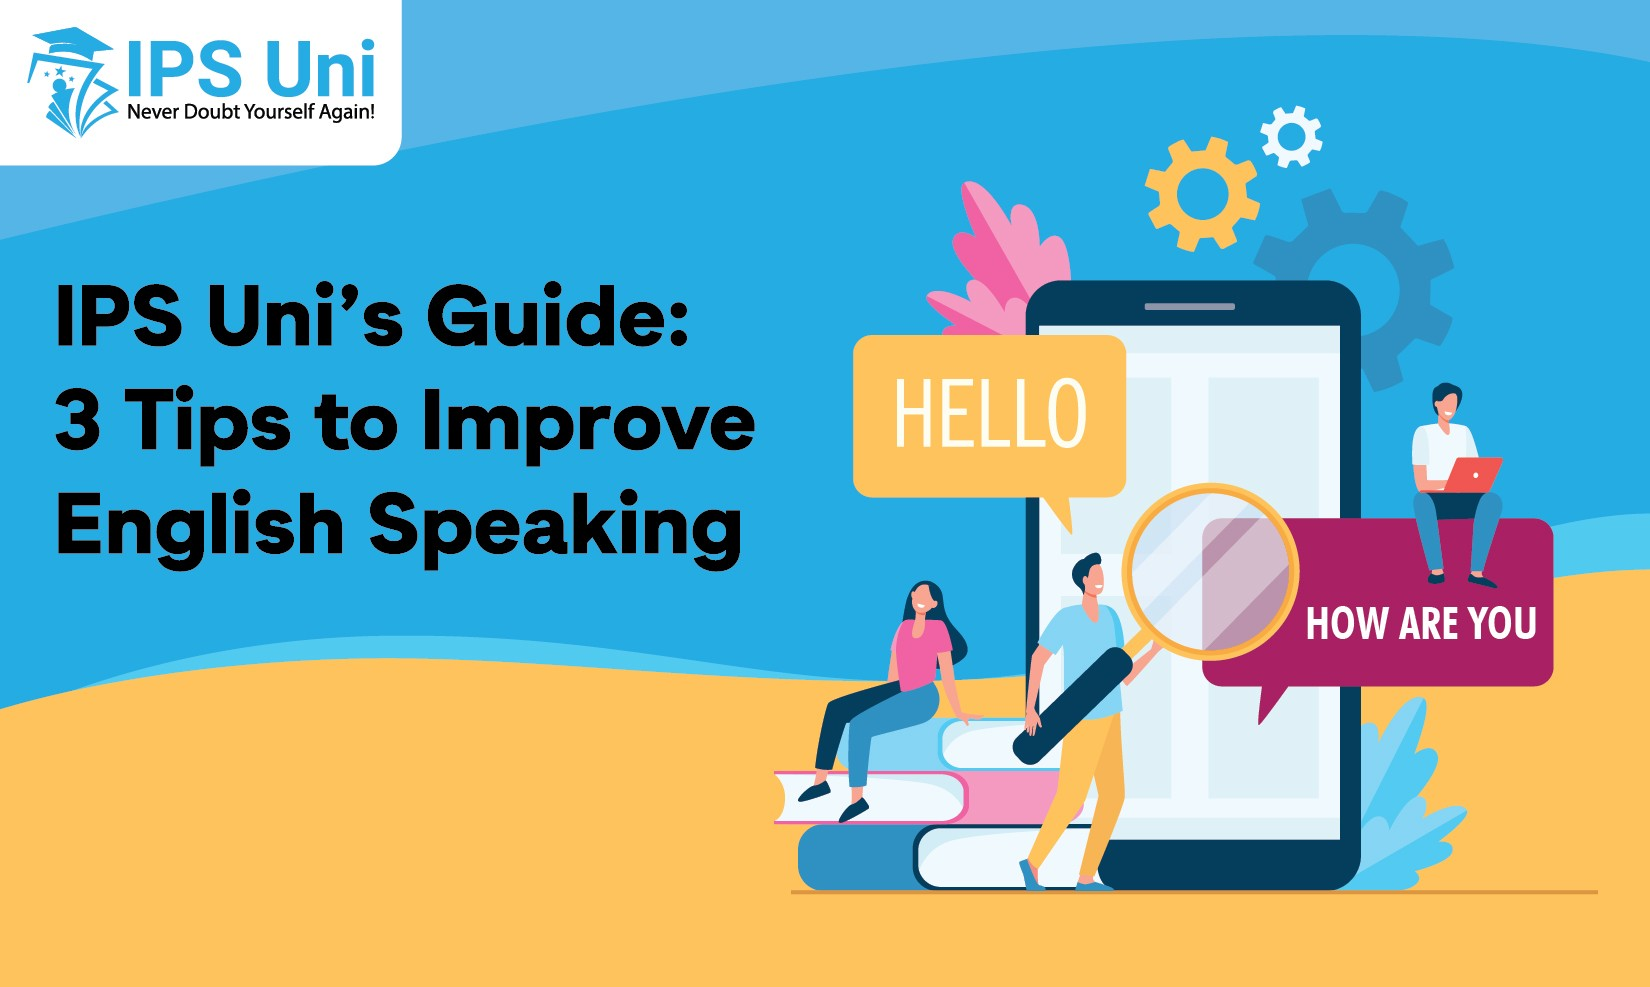 IPS Uni's Guide: 3 Tips to Improve English Speaking